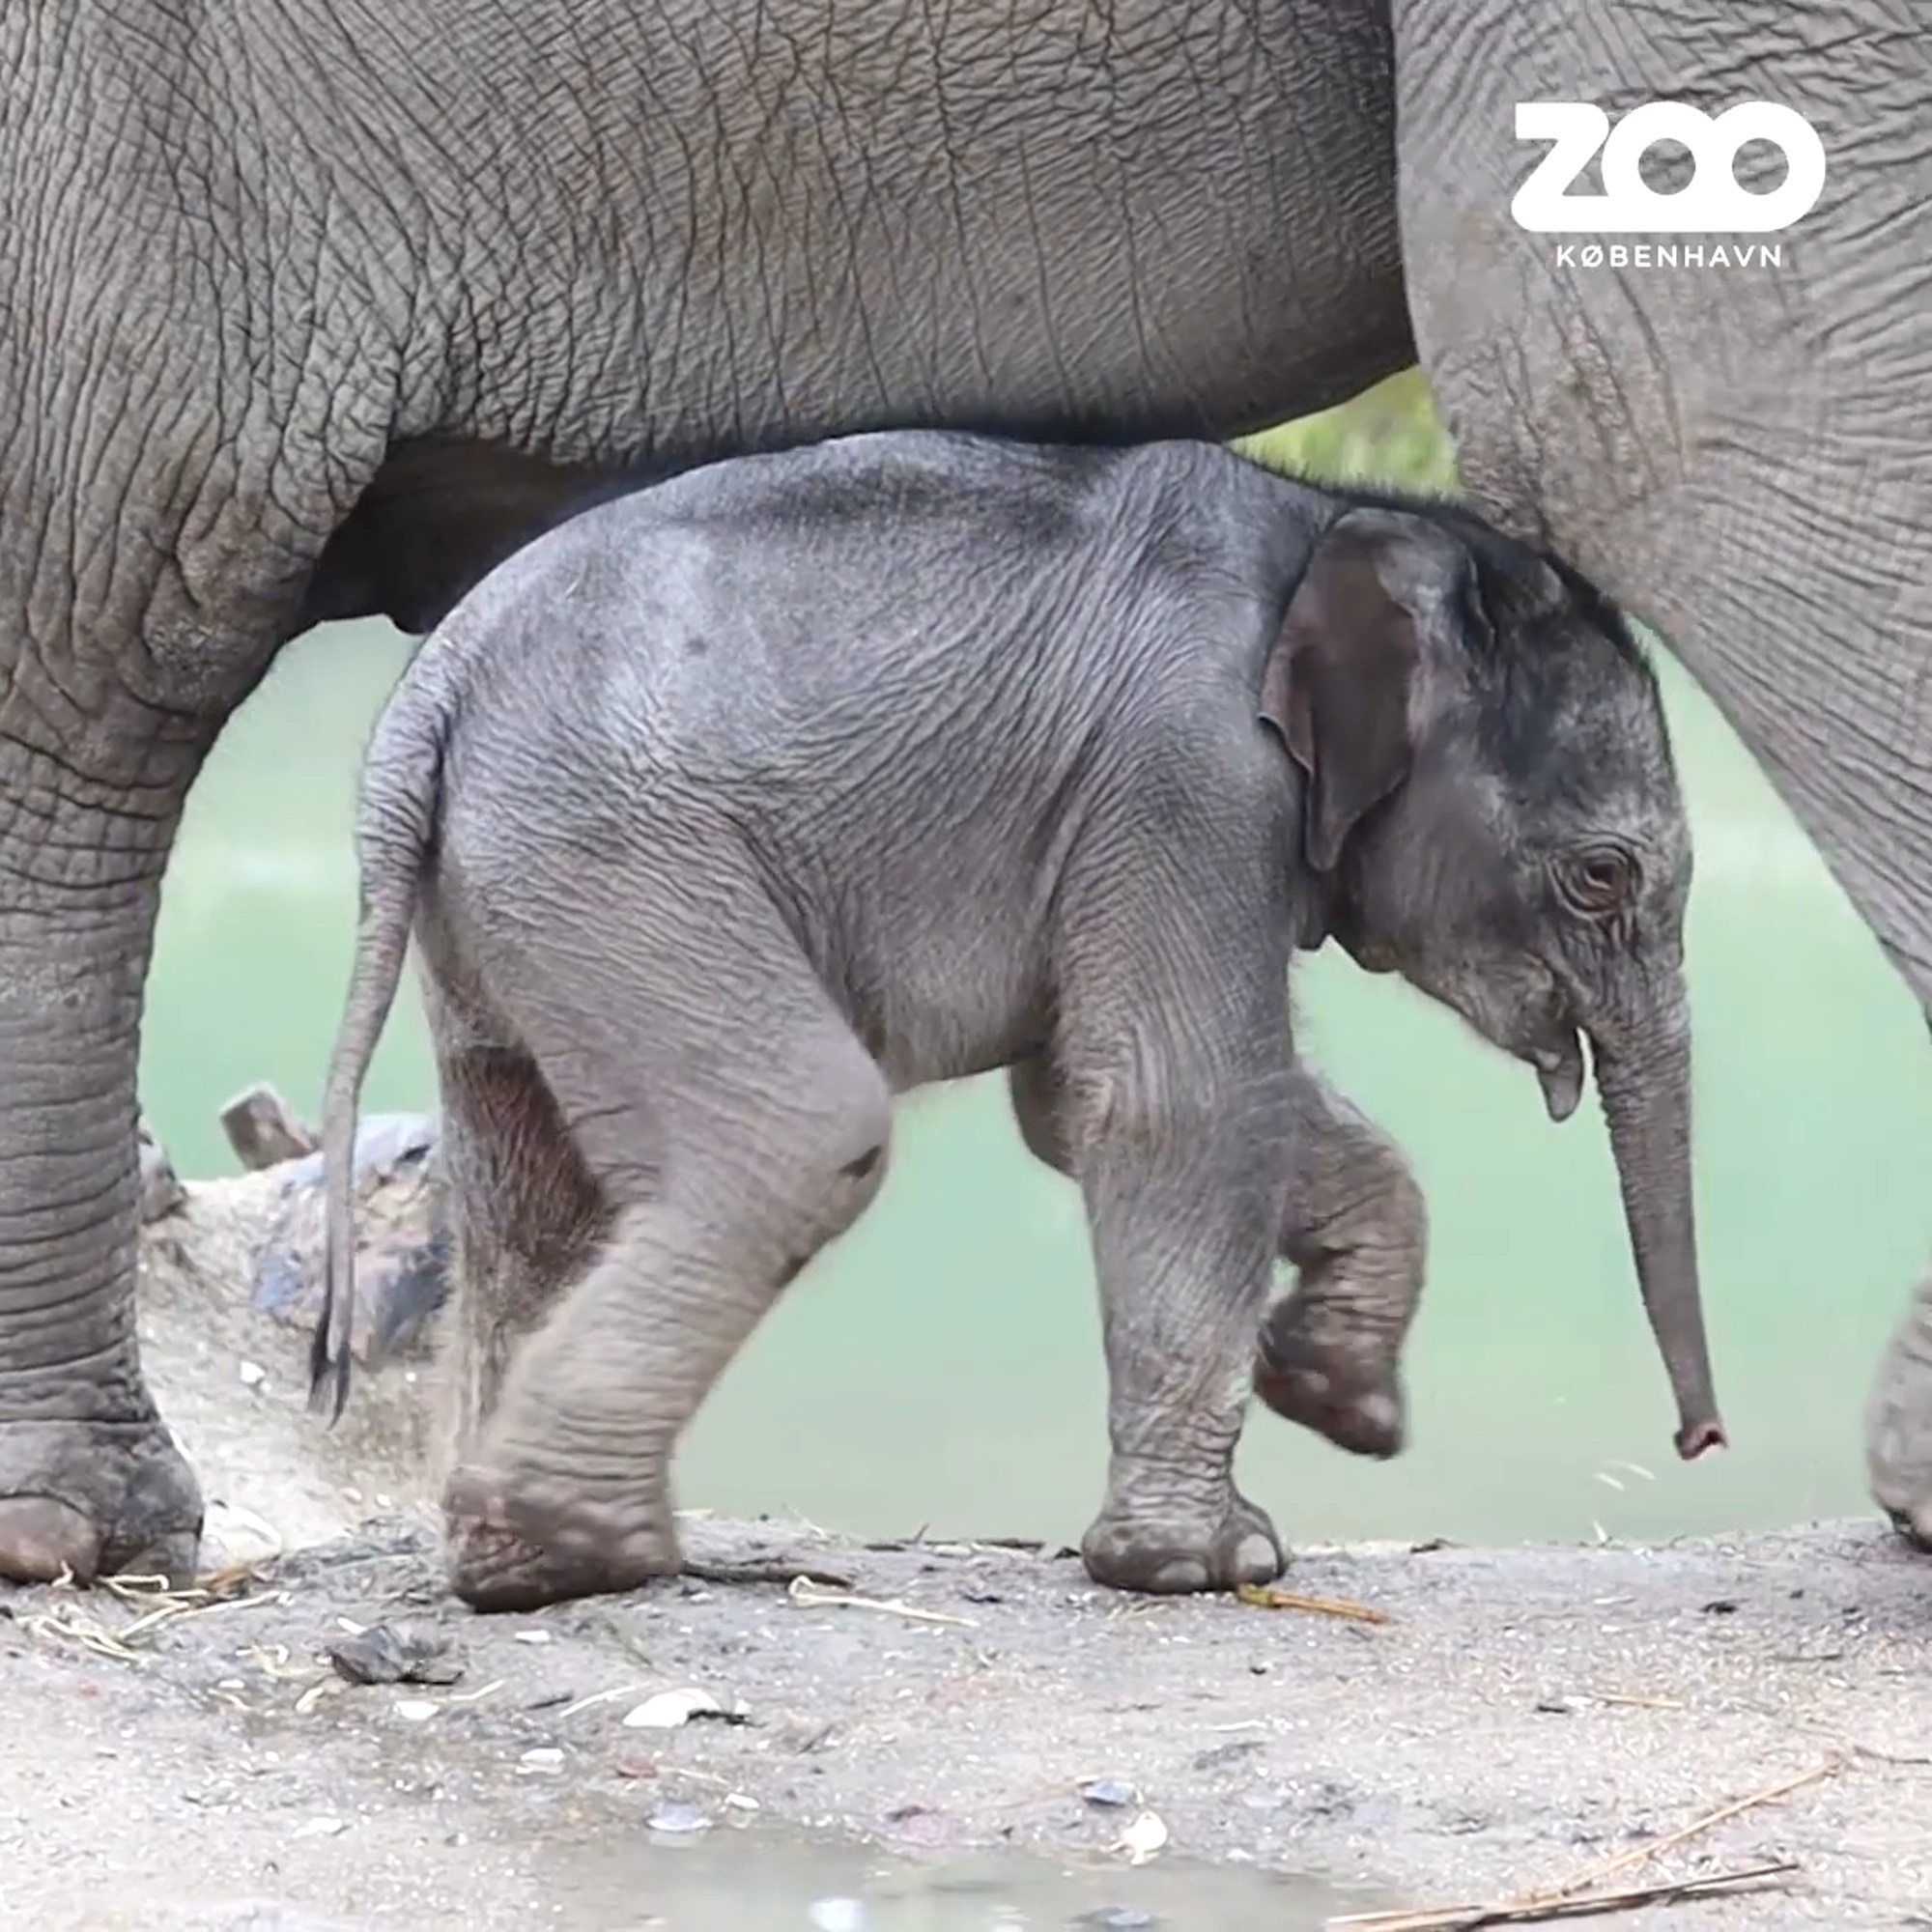 Baby Elephant Calf Makes Public Splash at Danish Zoo